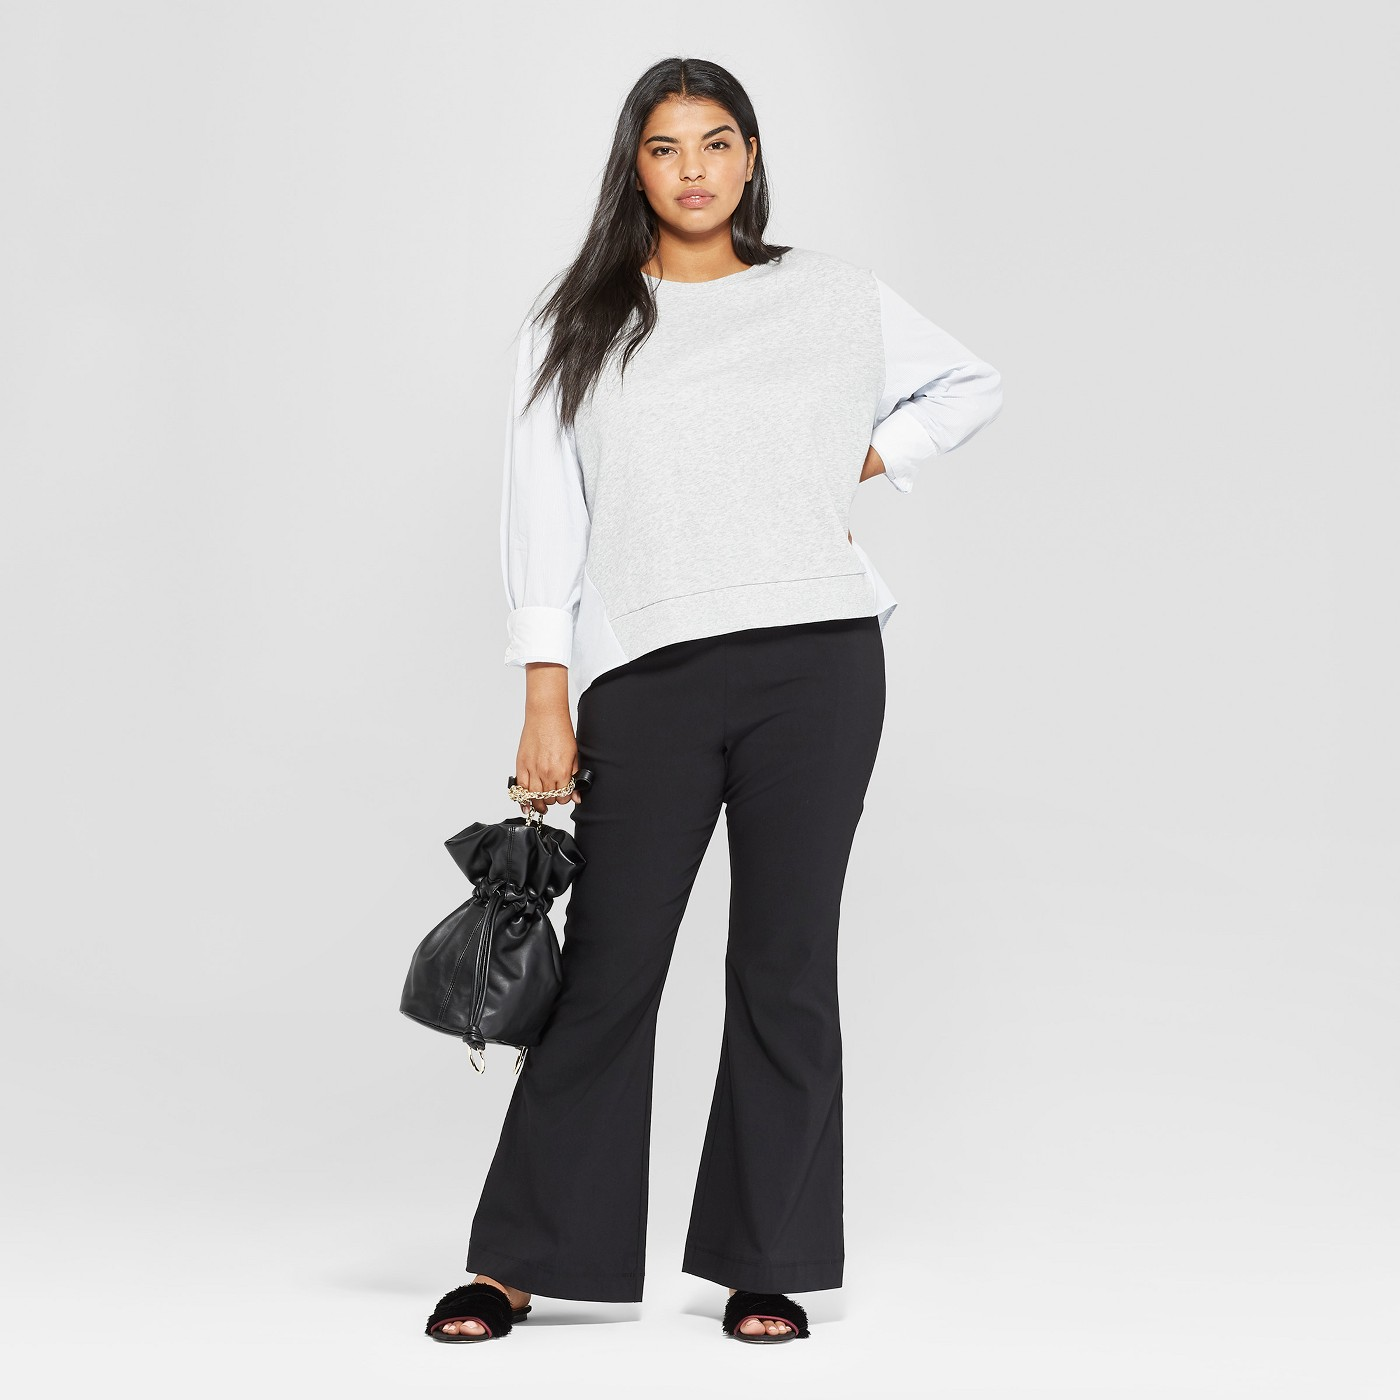 https   www.refinery29.com en-us target-winter-clothing-2018 2018-10 ... 4ce5e5057